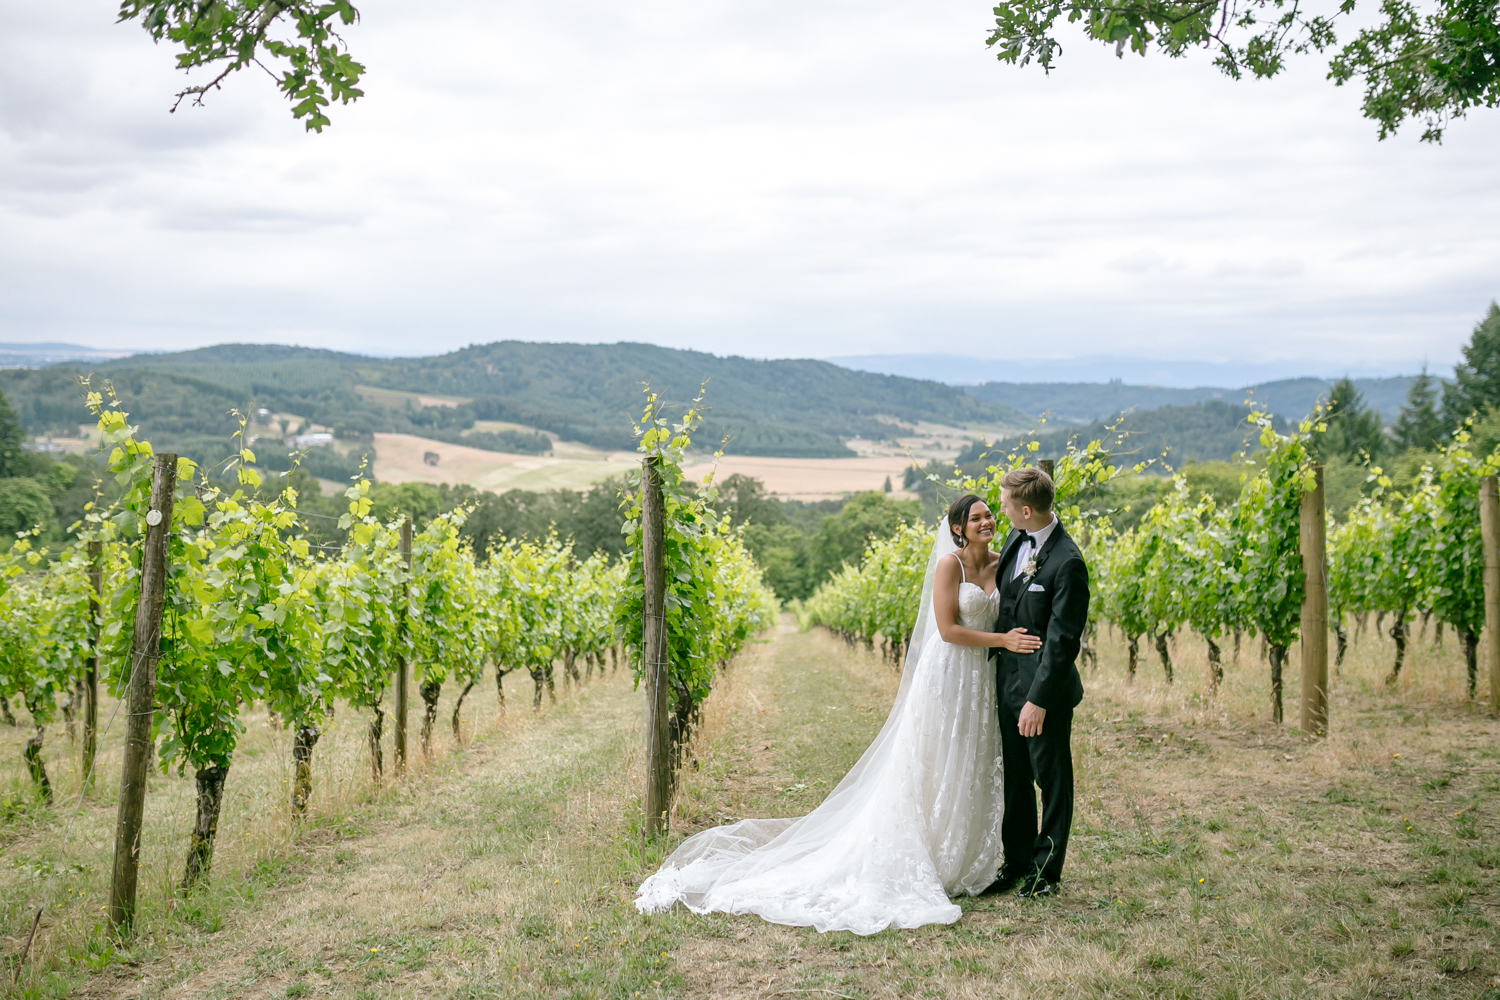 Youngberg Hill Vineyard Wedding in Wine Country Oregon - Corrie Mick Photography-43.jpg